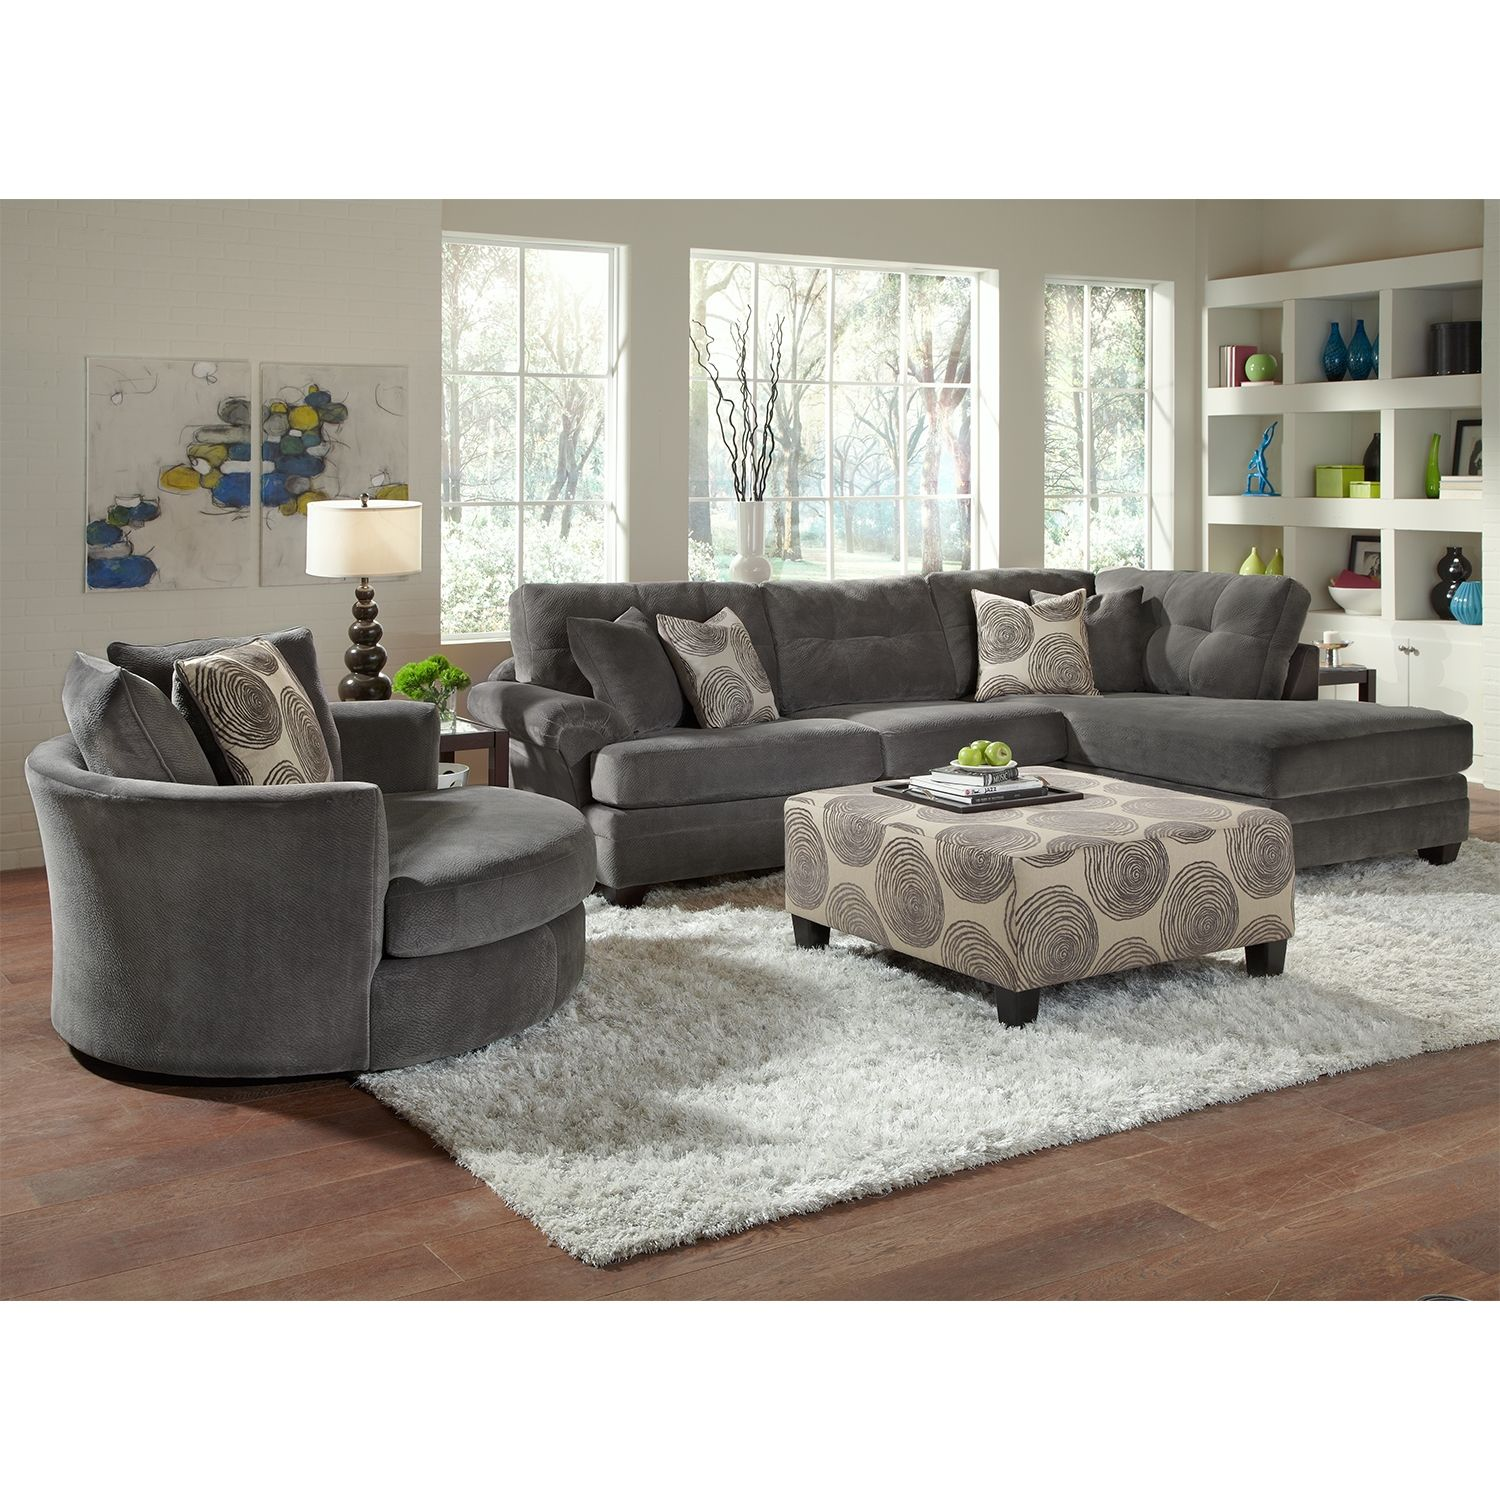 Living Room Sets Value City Furniture catalina gray upholstery 2 pc. sectional | furniture | home